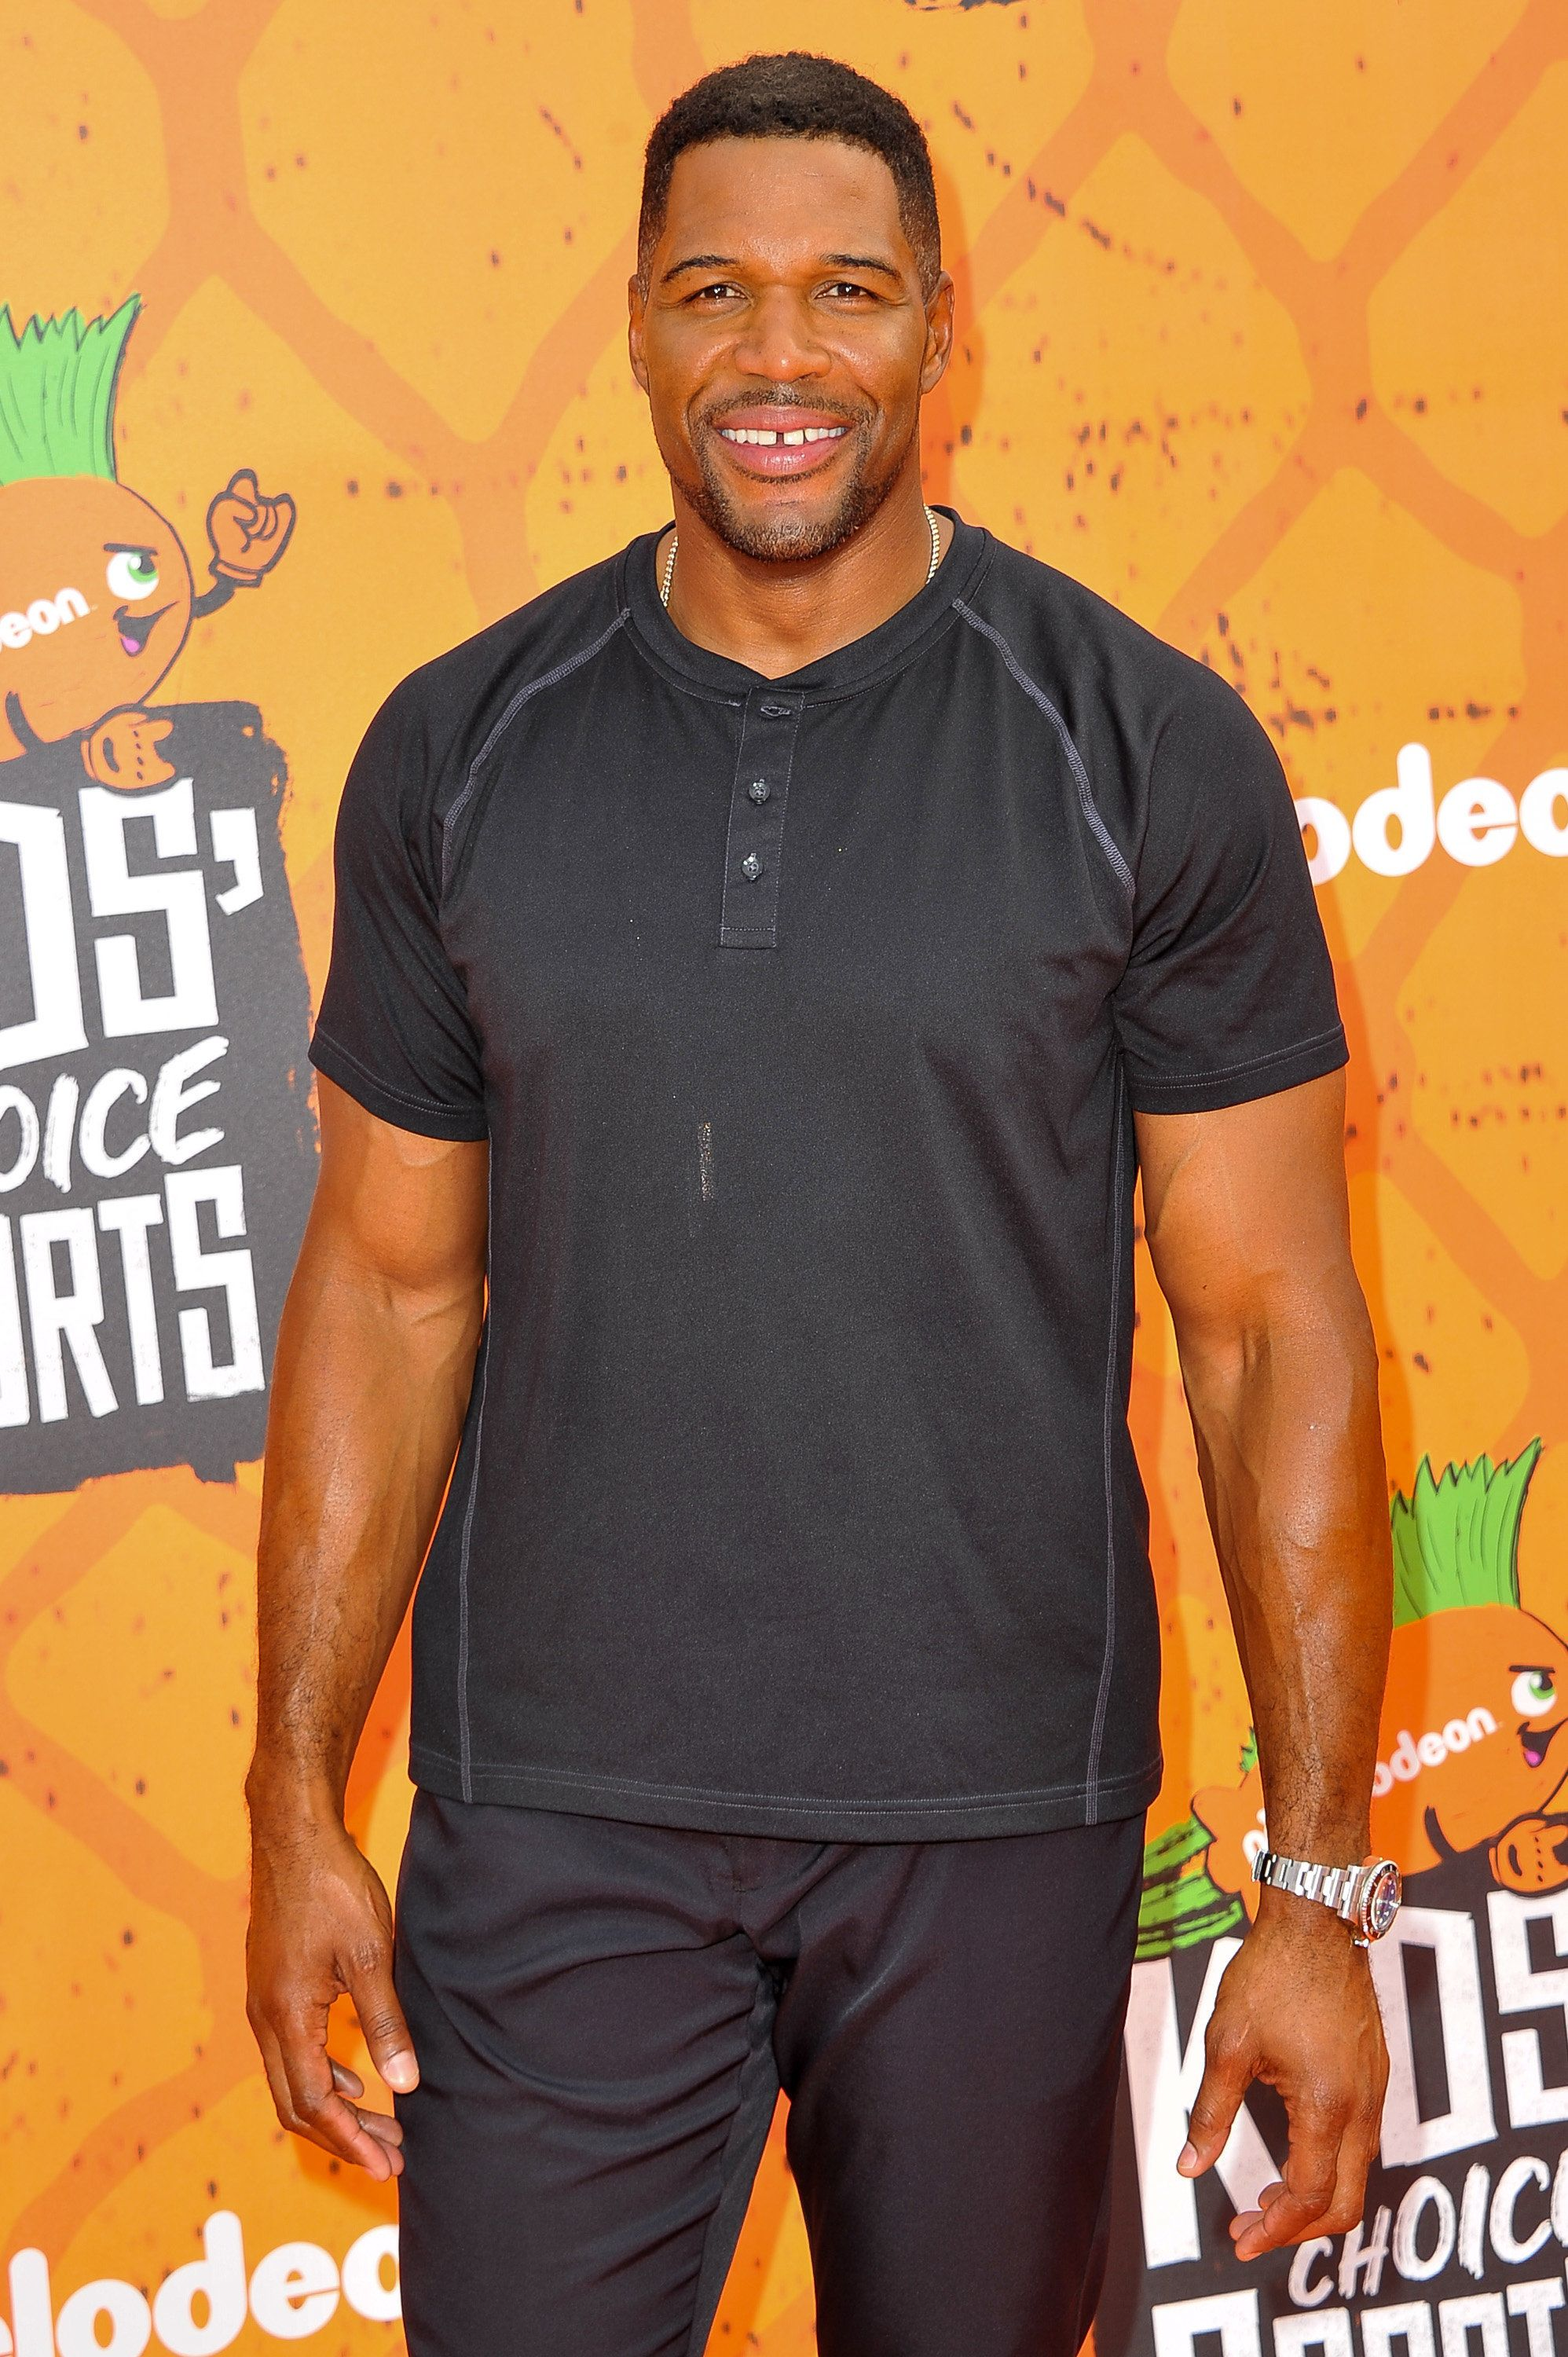 WESTWOOD, CA - JULY 14:  TV personality Michael Strahan arrives at the Nickelodeon Kids' Choice Sports Awards 2016 at UCLA's Pauley Pavilion on July 14, 2016 in Westwood, California.  (Photo by Allen Berezovsky/WireImage)